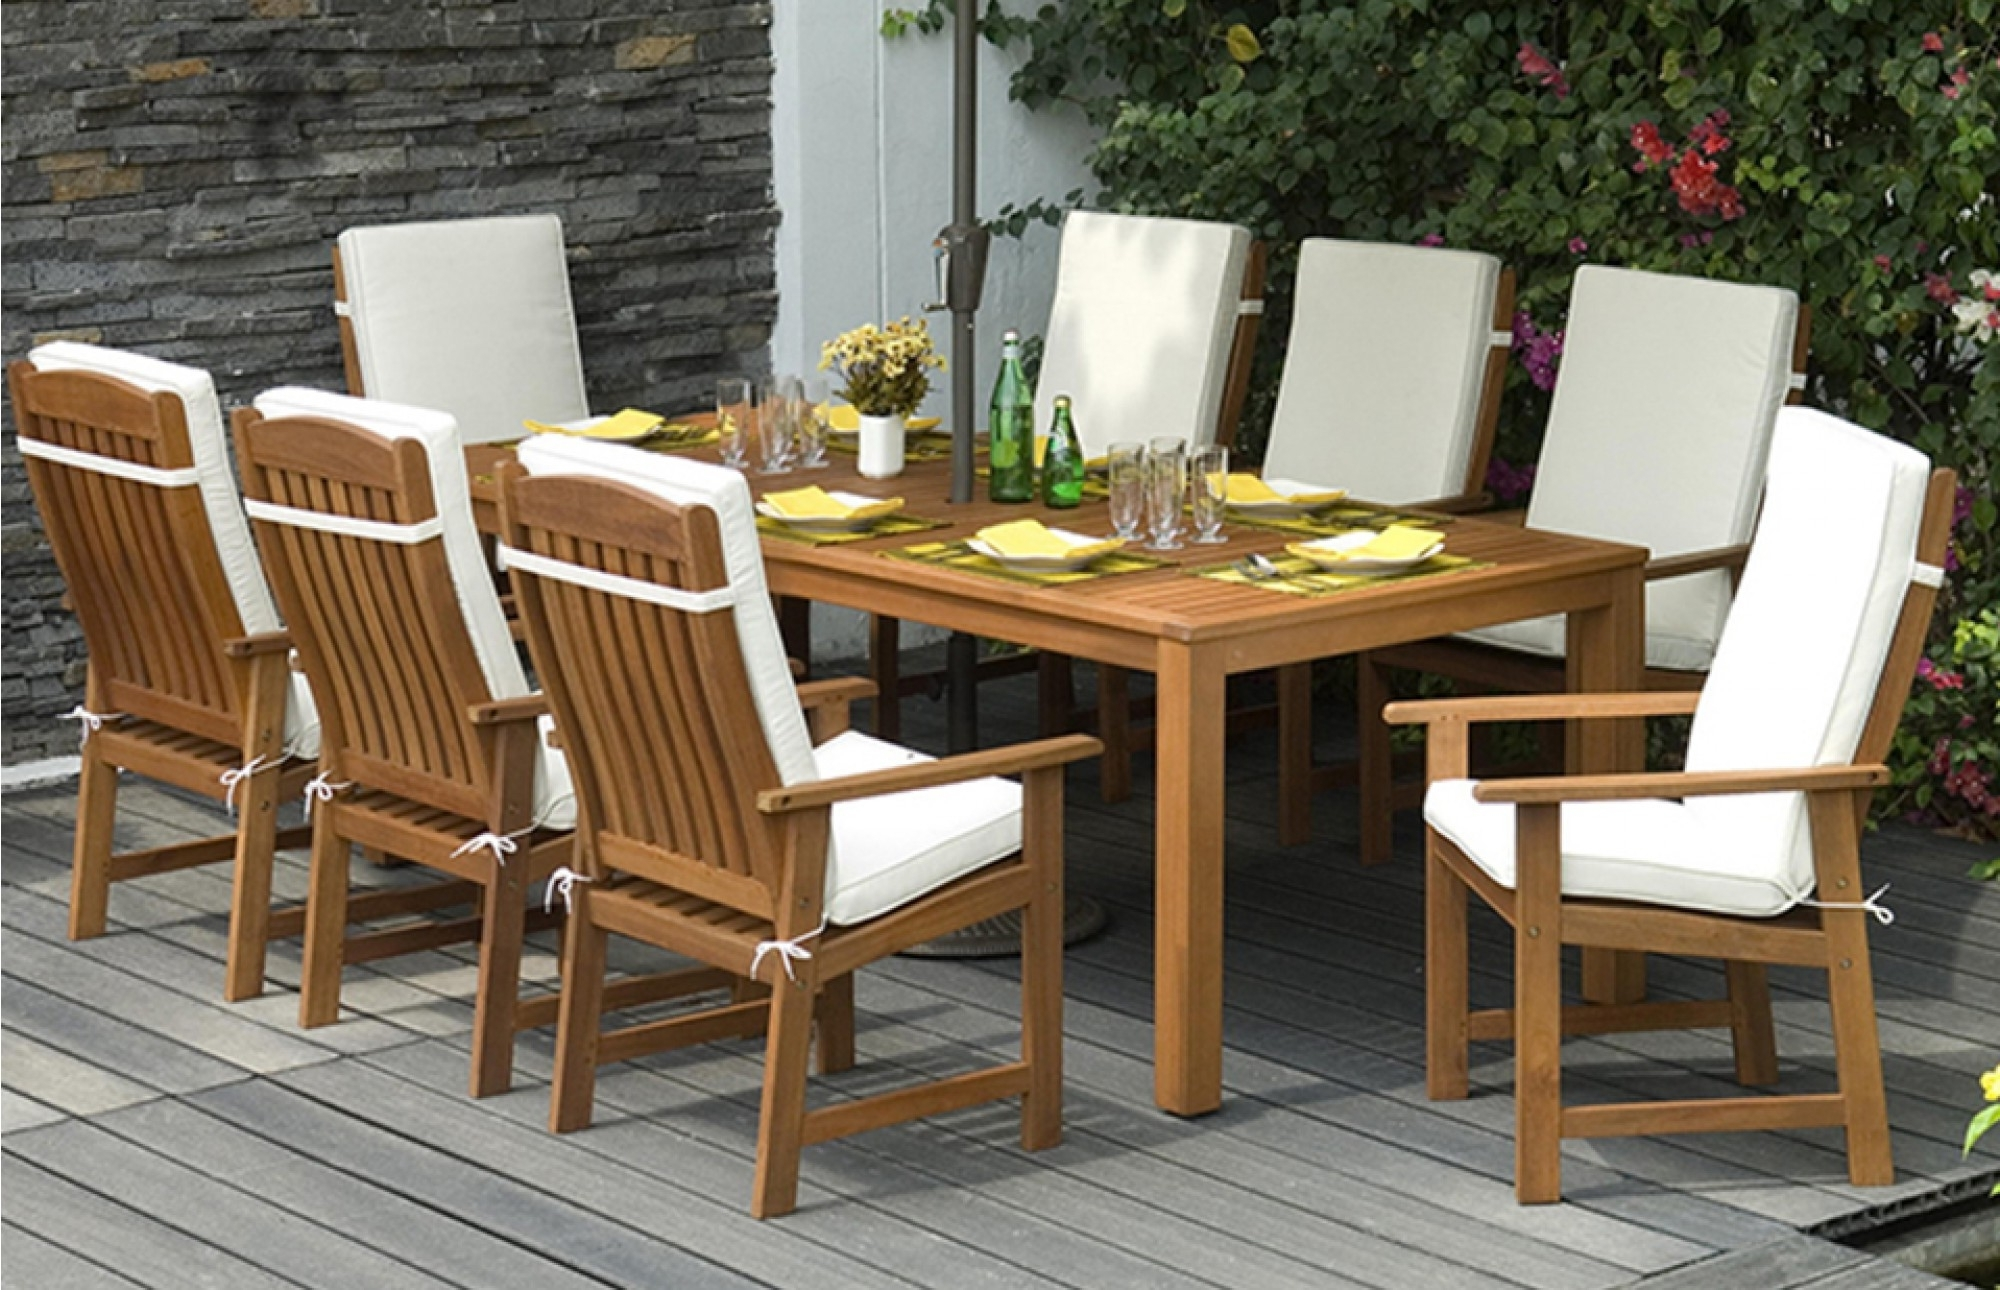 Garden Dining Tables Pertaining To Most Recent Patio: Marvellous Wooden Patio Set Outdoor Furniture Wood Types (View 14 of 25)